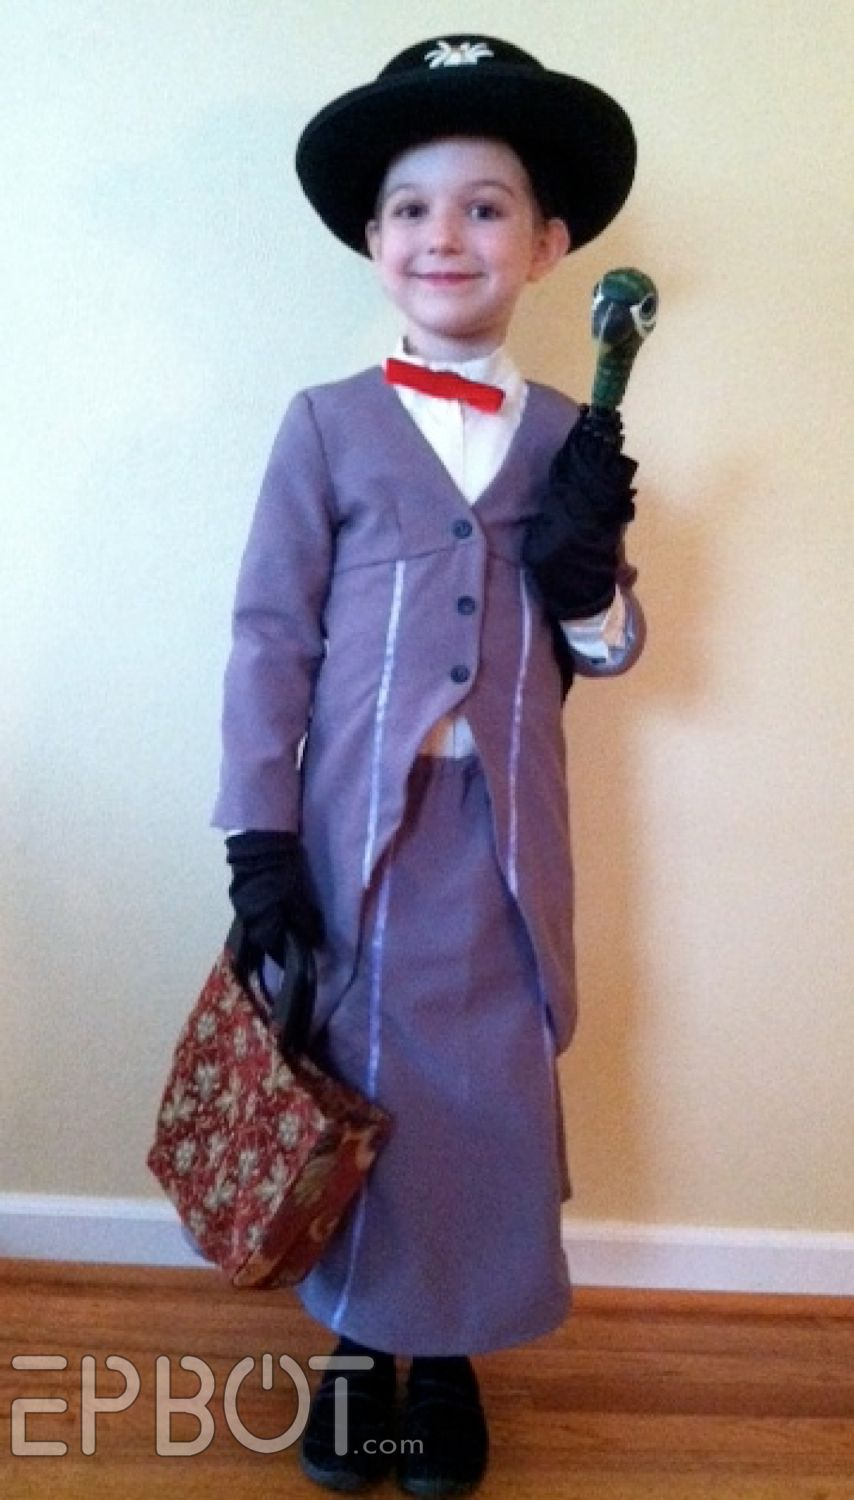 Too cute - homemade Mary Poppins costume!